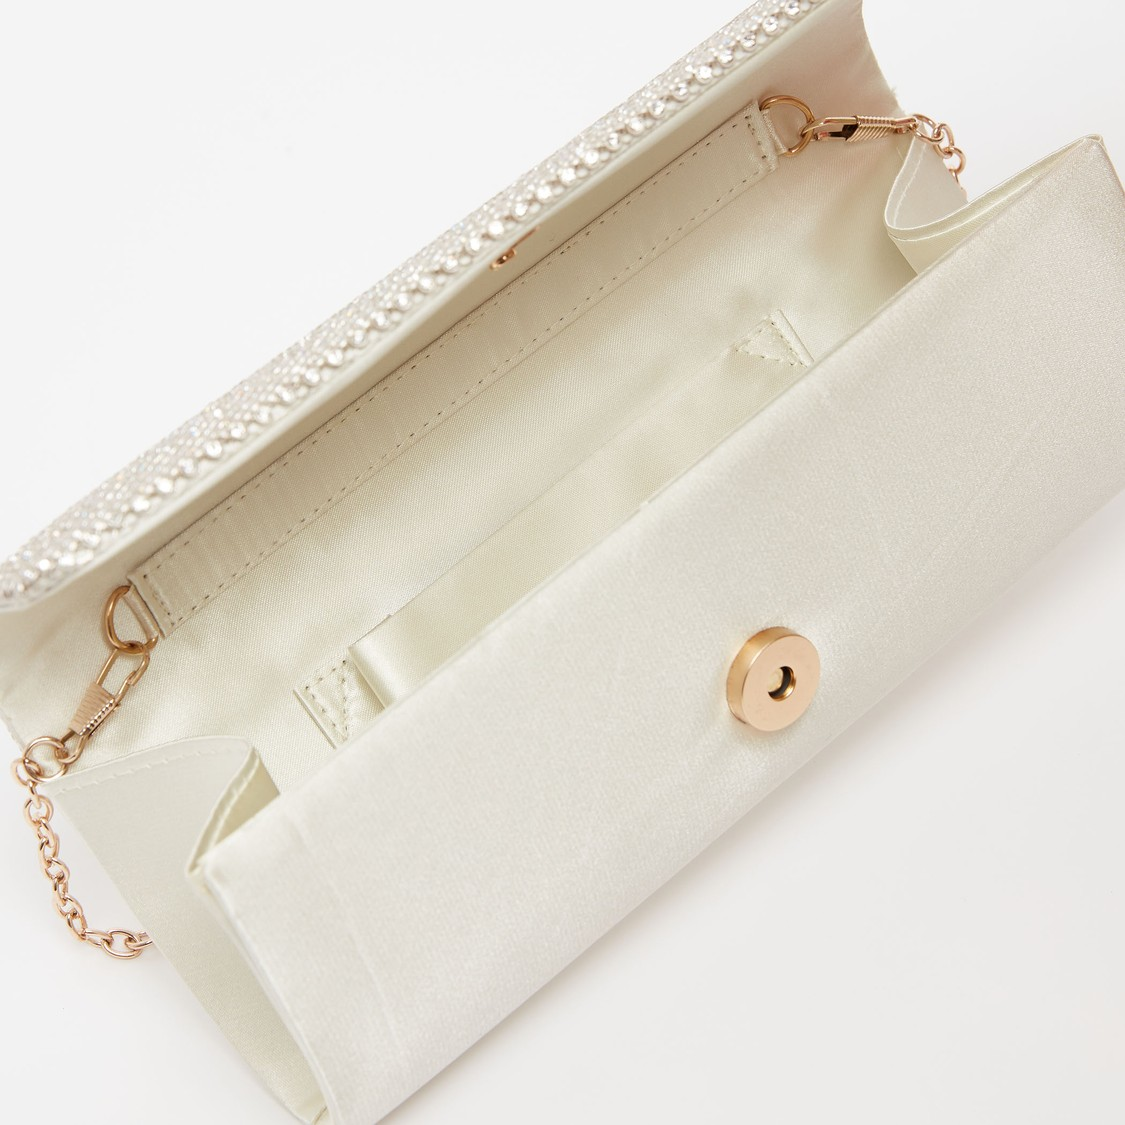 Embellished Clutch with Detachable Metallic Chain